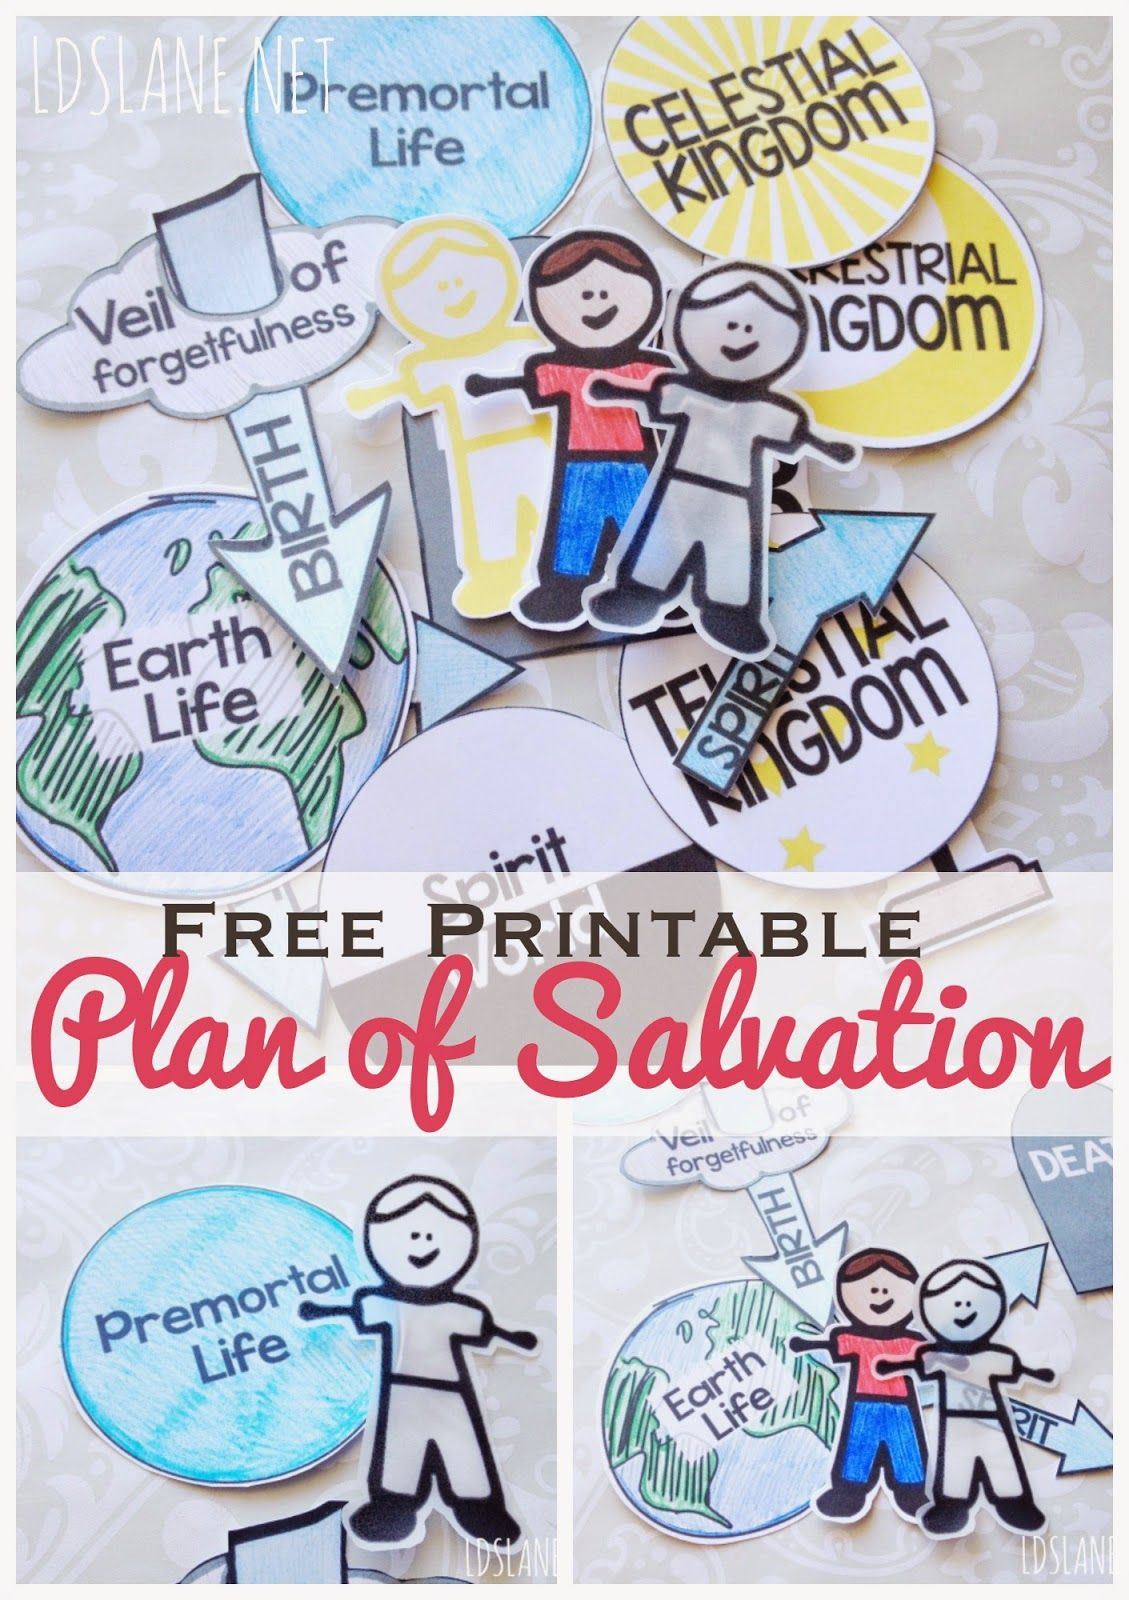 Family Home Evening Series Plan Of Salvation Ldslane